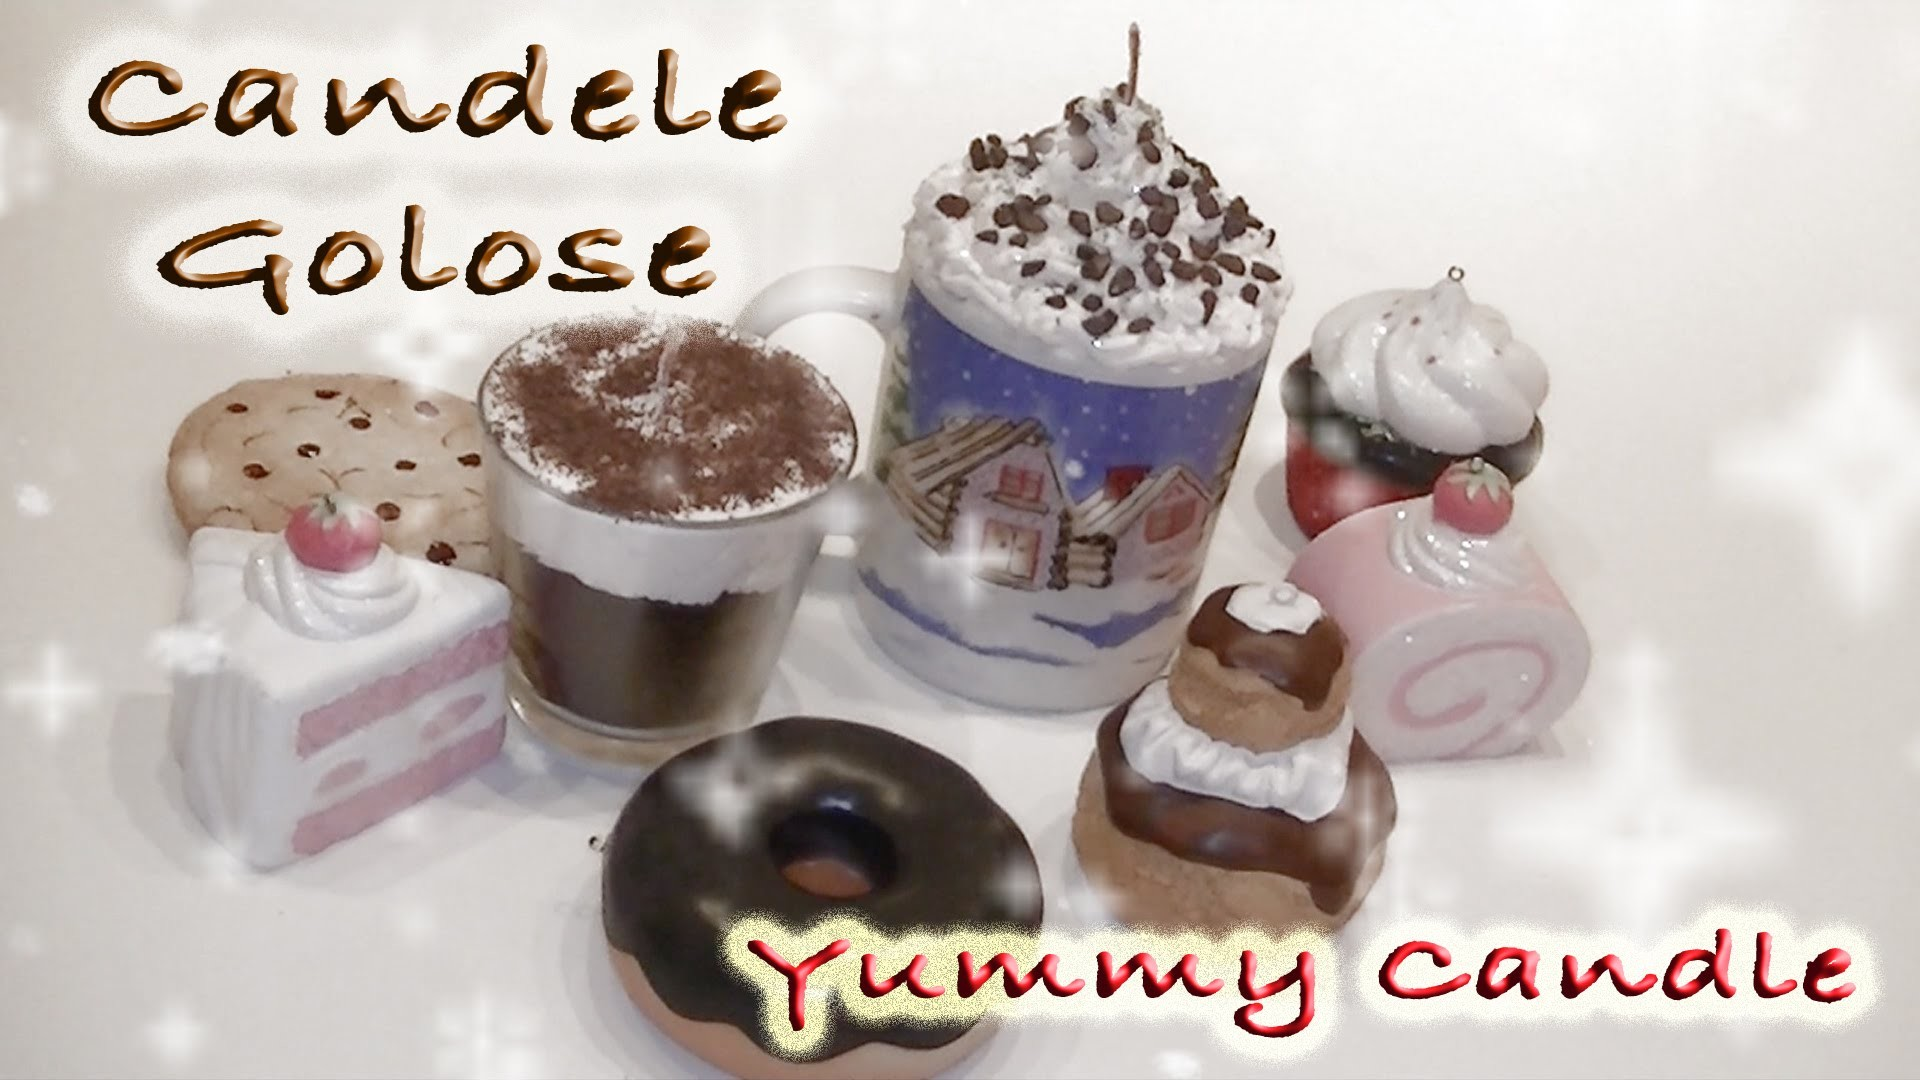 DIY Tutorial Candele Golose - Yummy Candle How To